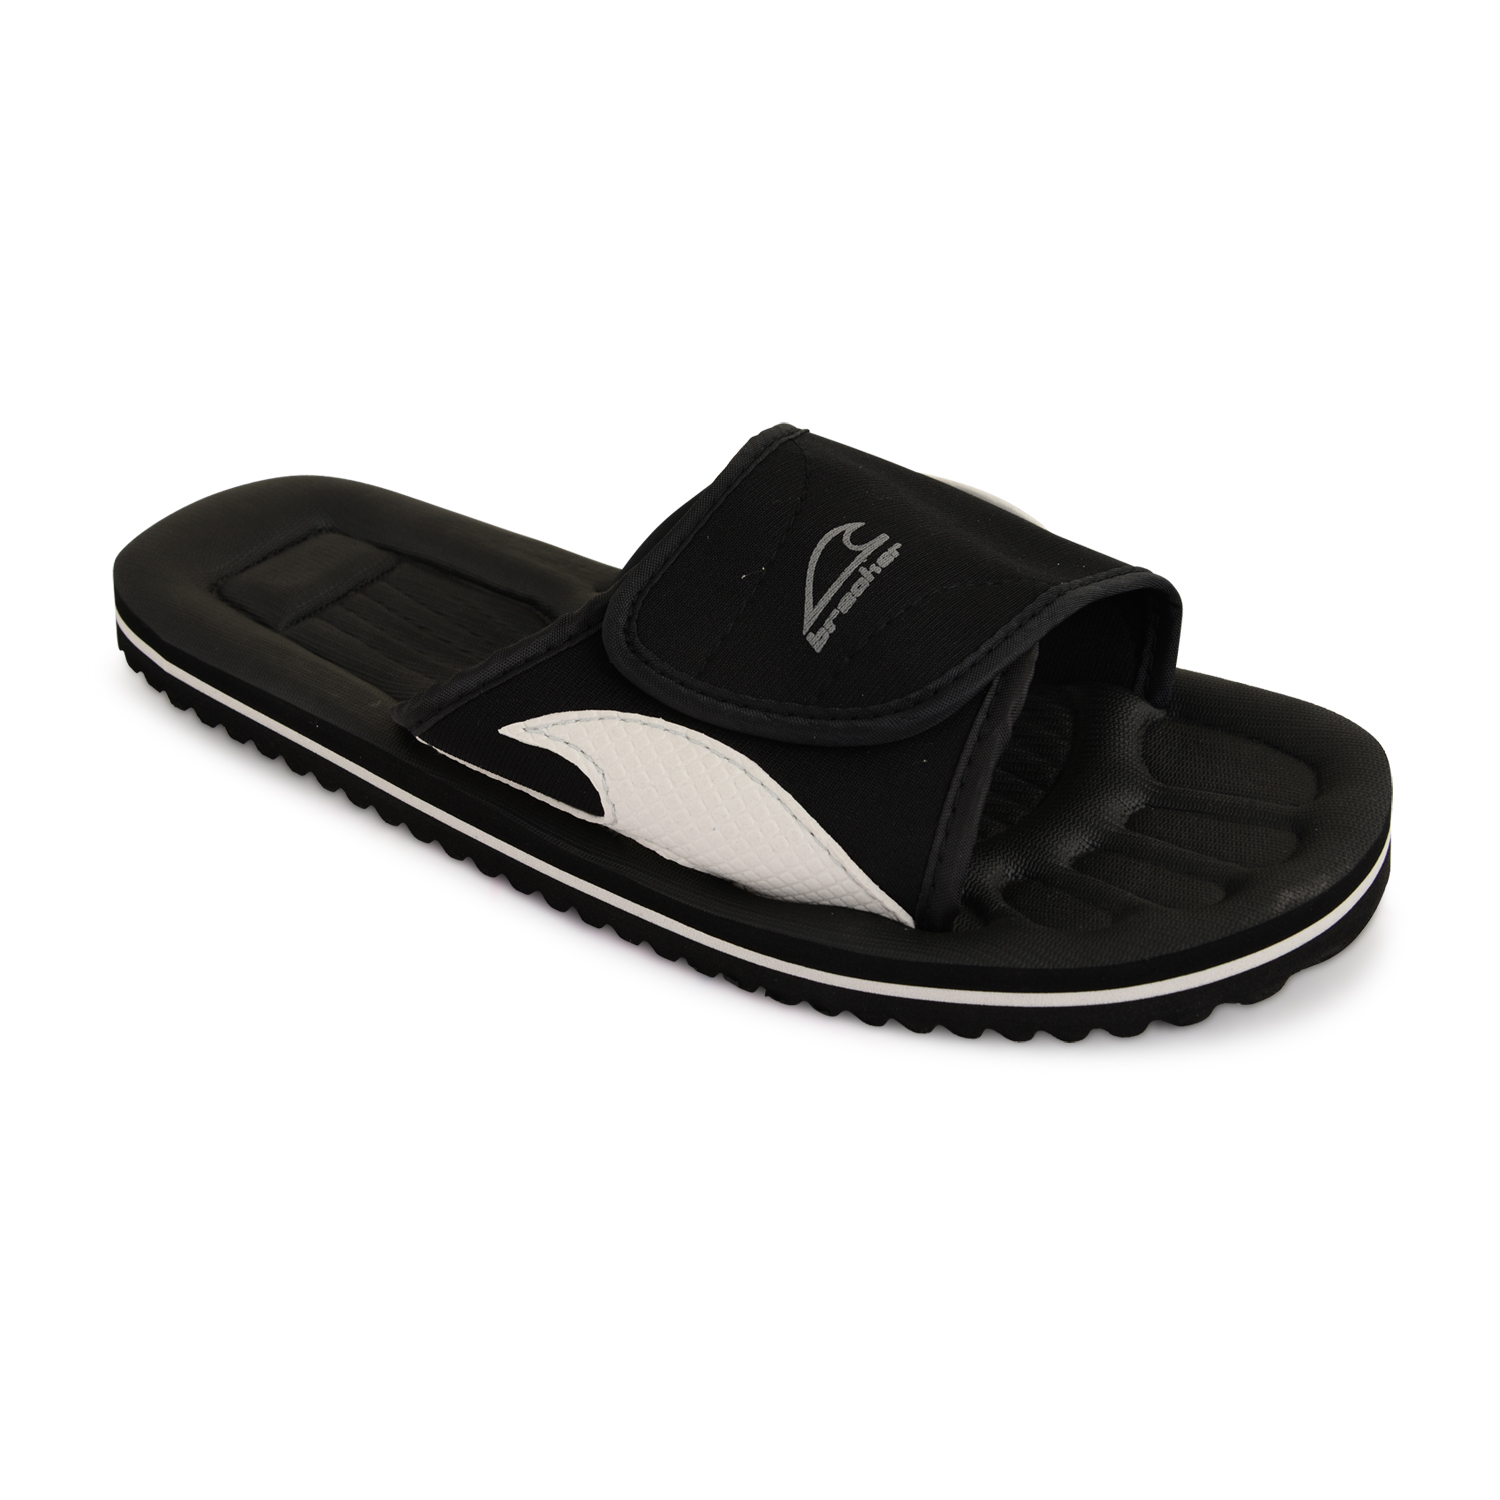 Hombre velcro chanclas sandalias para ducha piscina playa for Zapatillas piscina